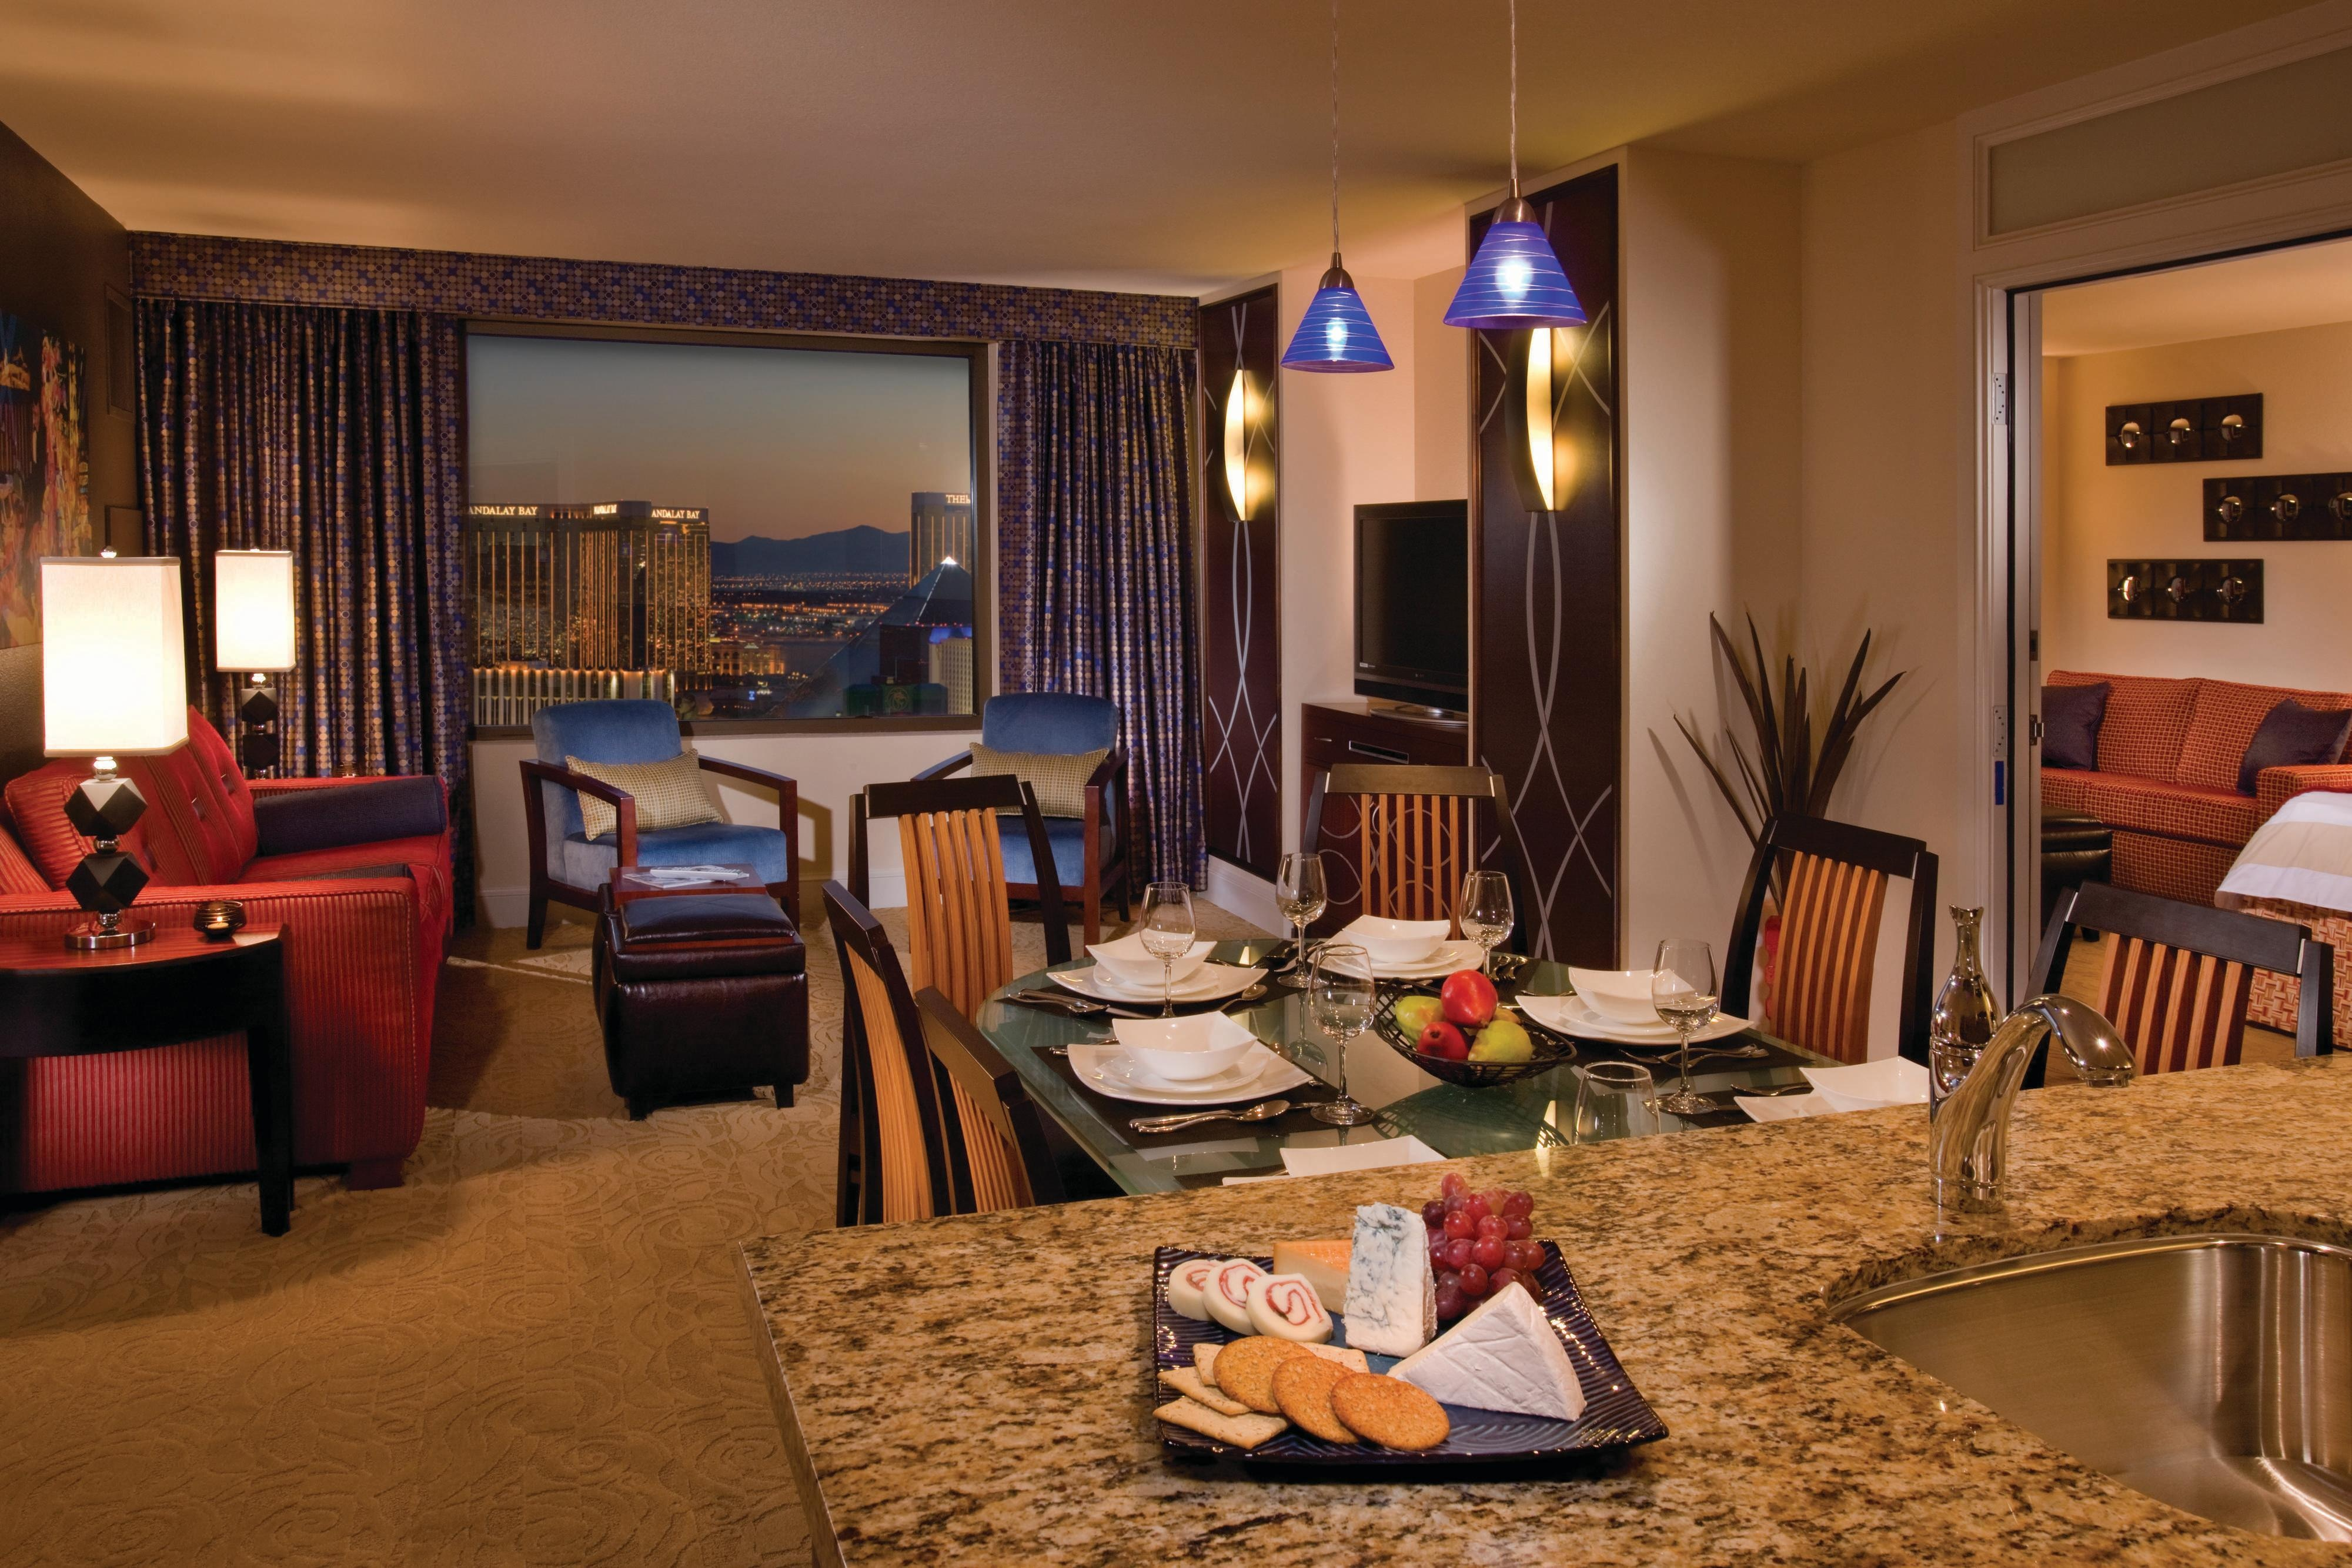 villas in las vegas marriott s grand chateau rh marriott com marriott grand chateau las vegas 3 bedroom villa marriott grand chateau las vegas tripadvisor